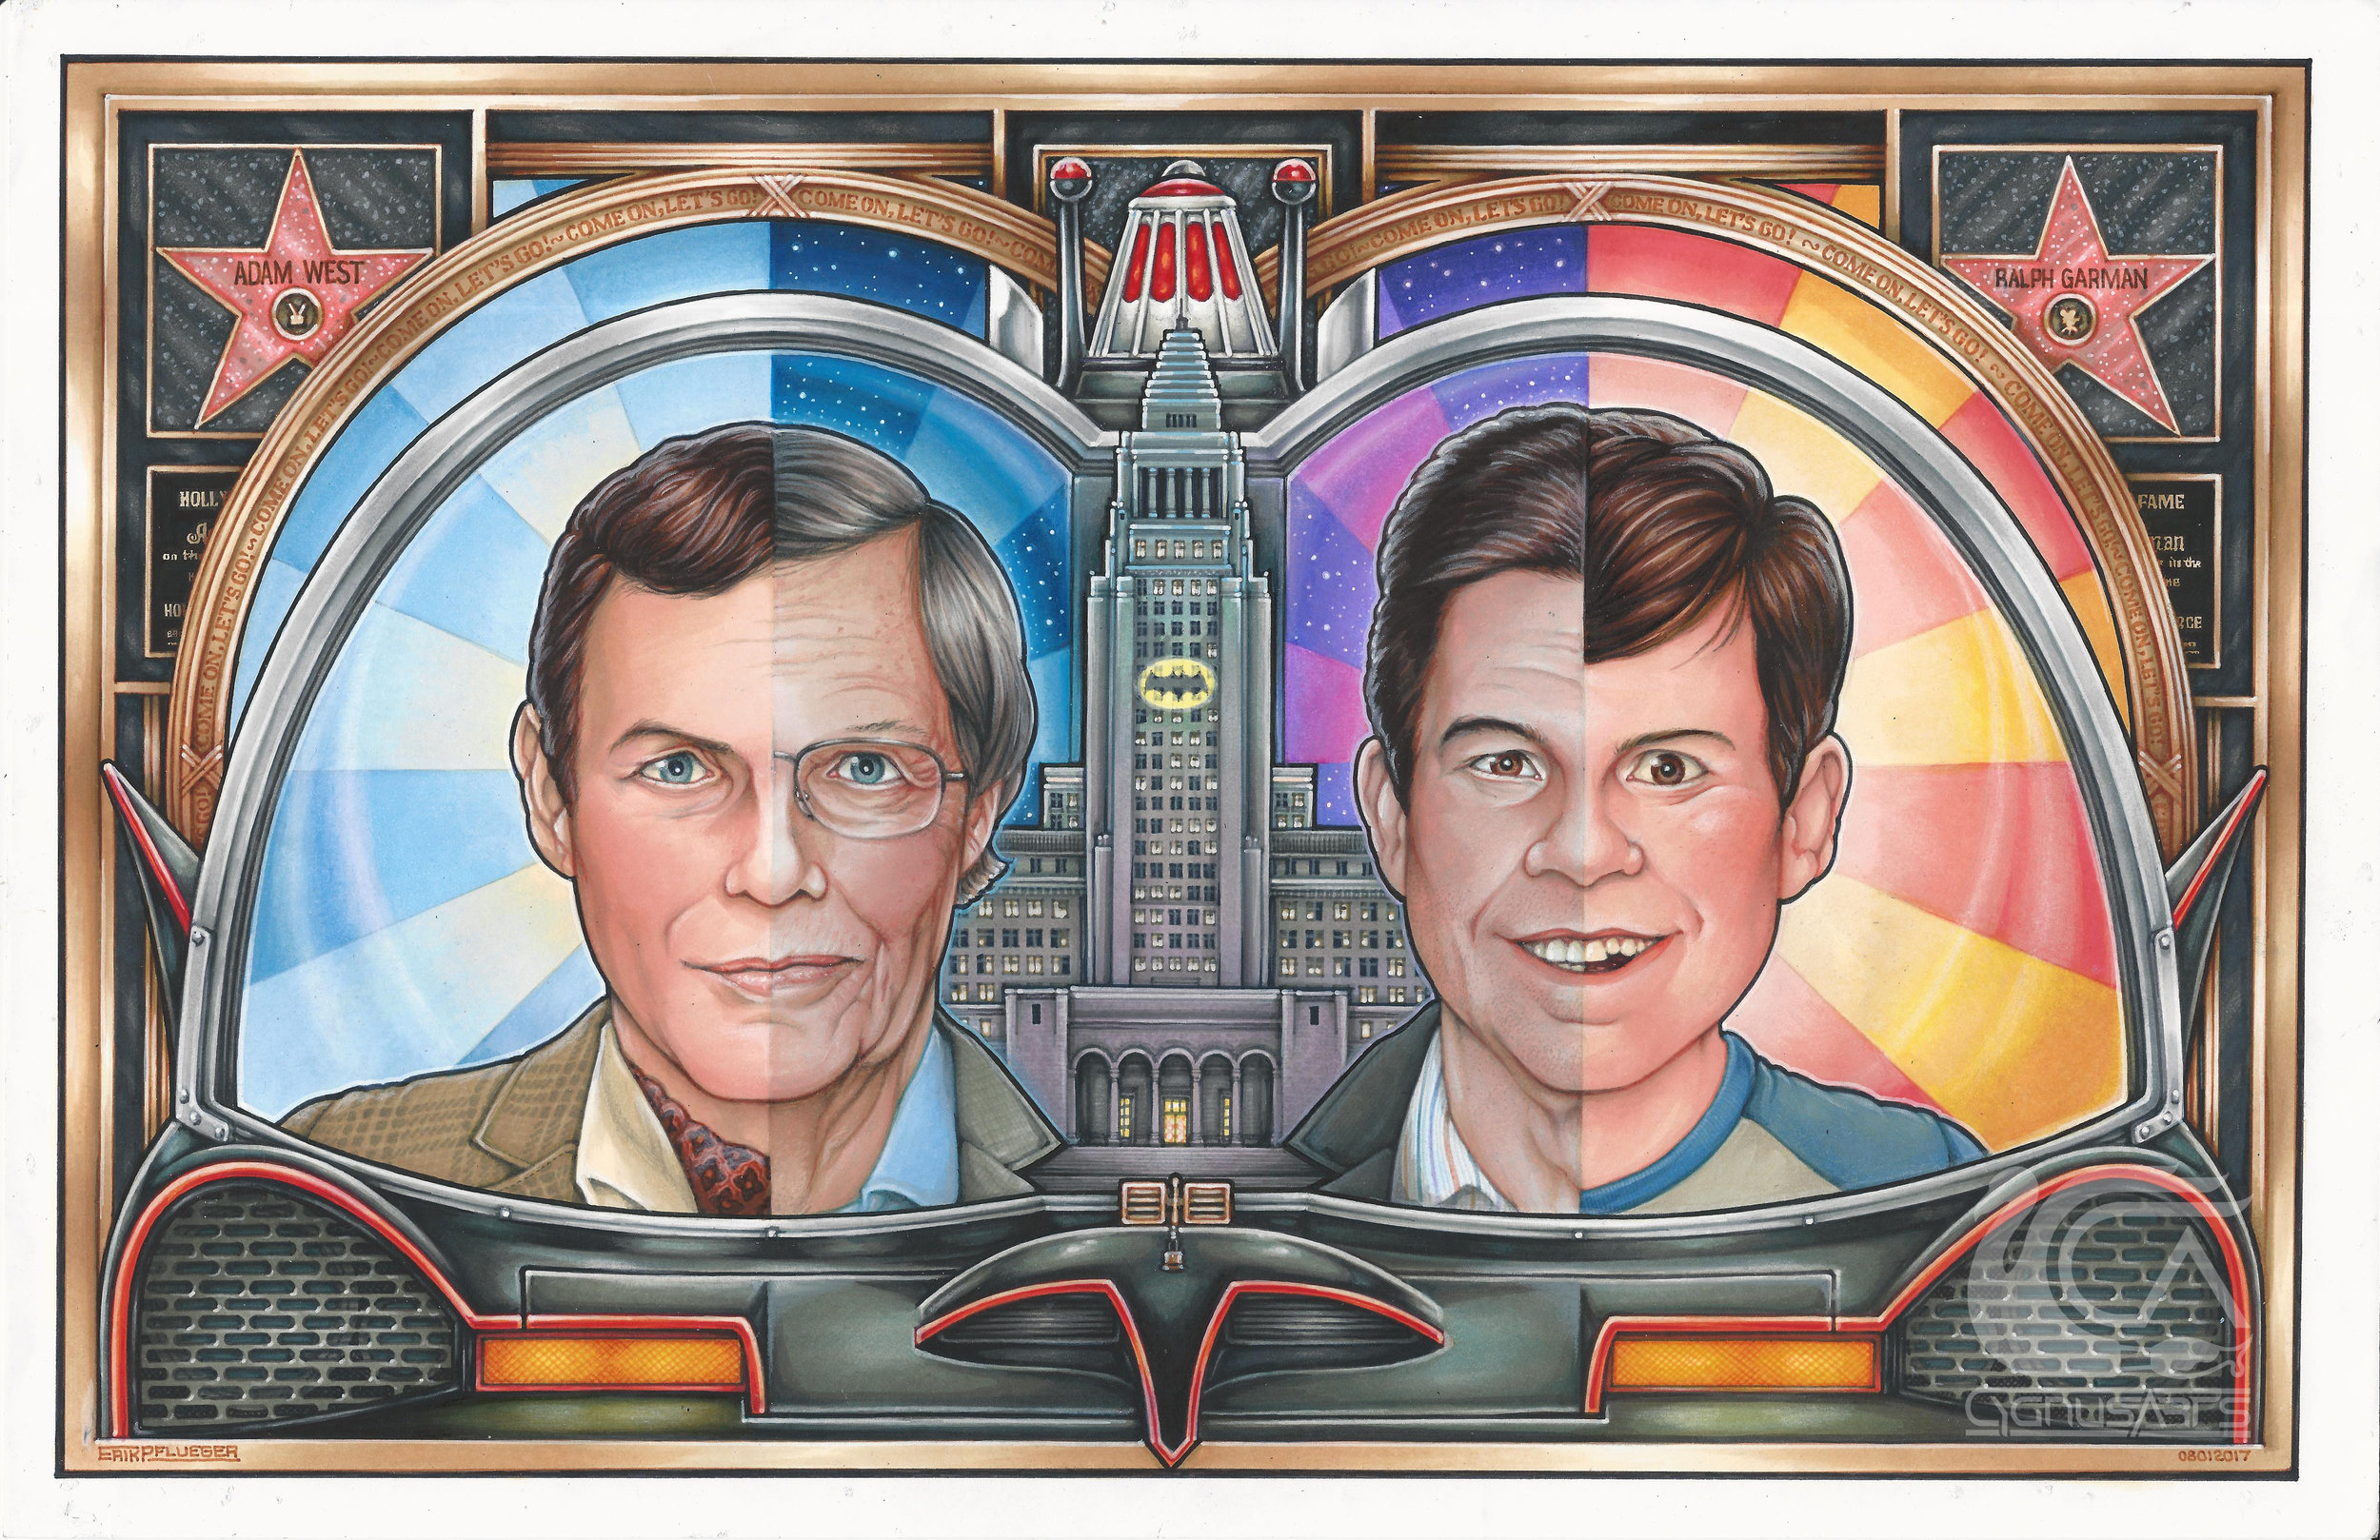 Portrait of Ralph Garman and Adam West - watermark.jpg